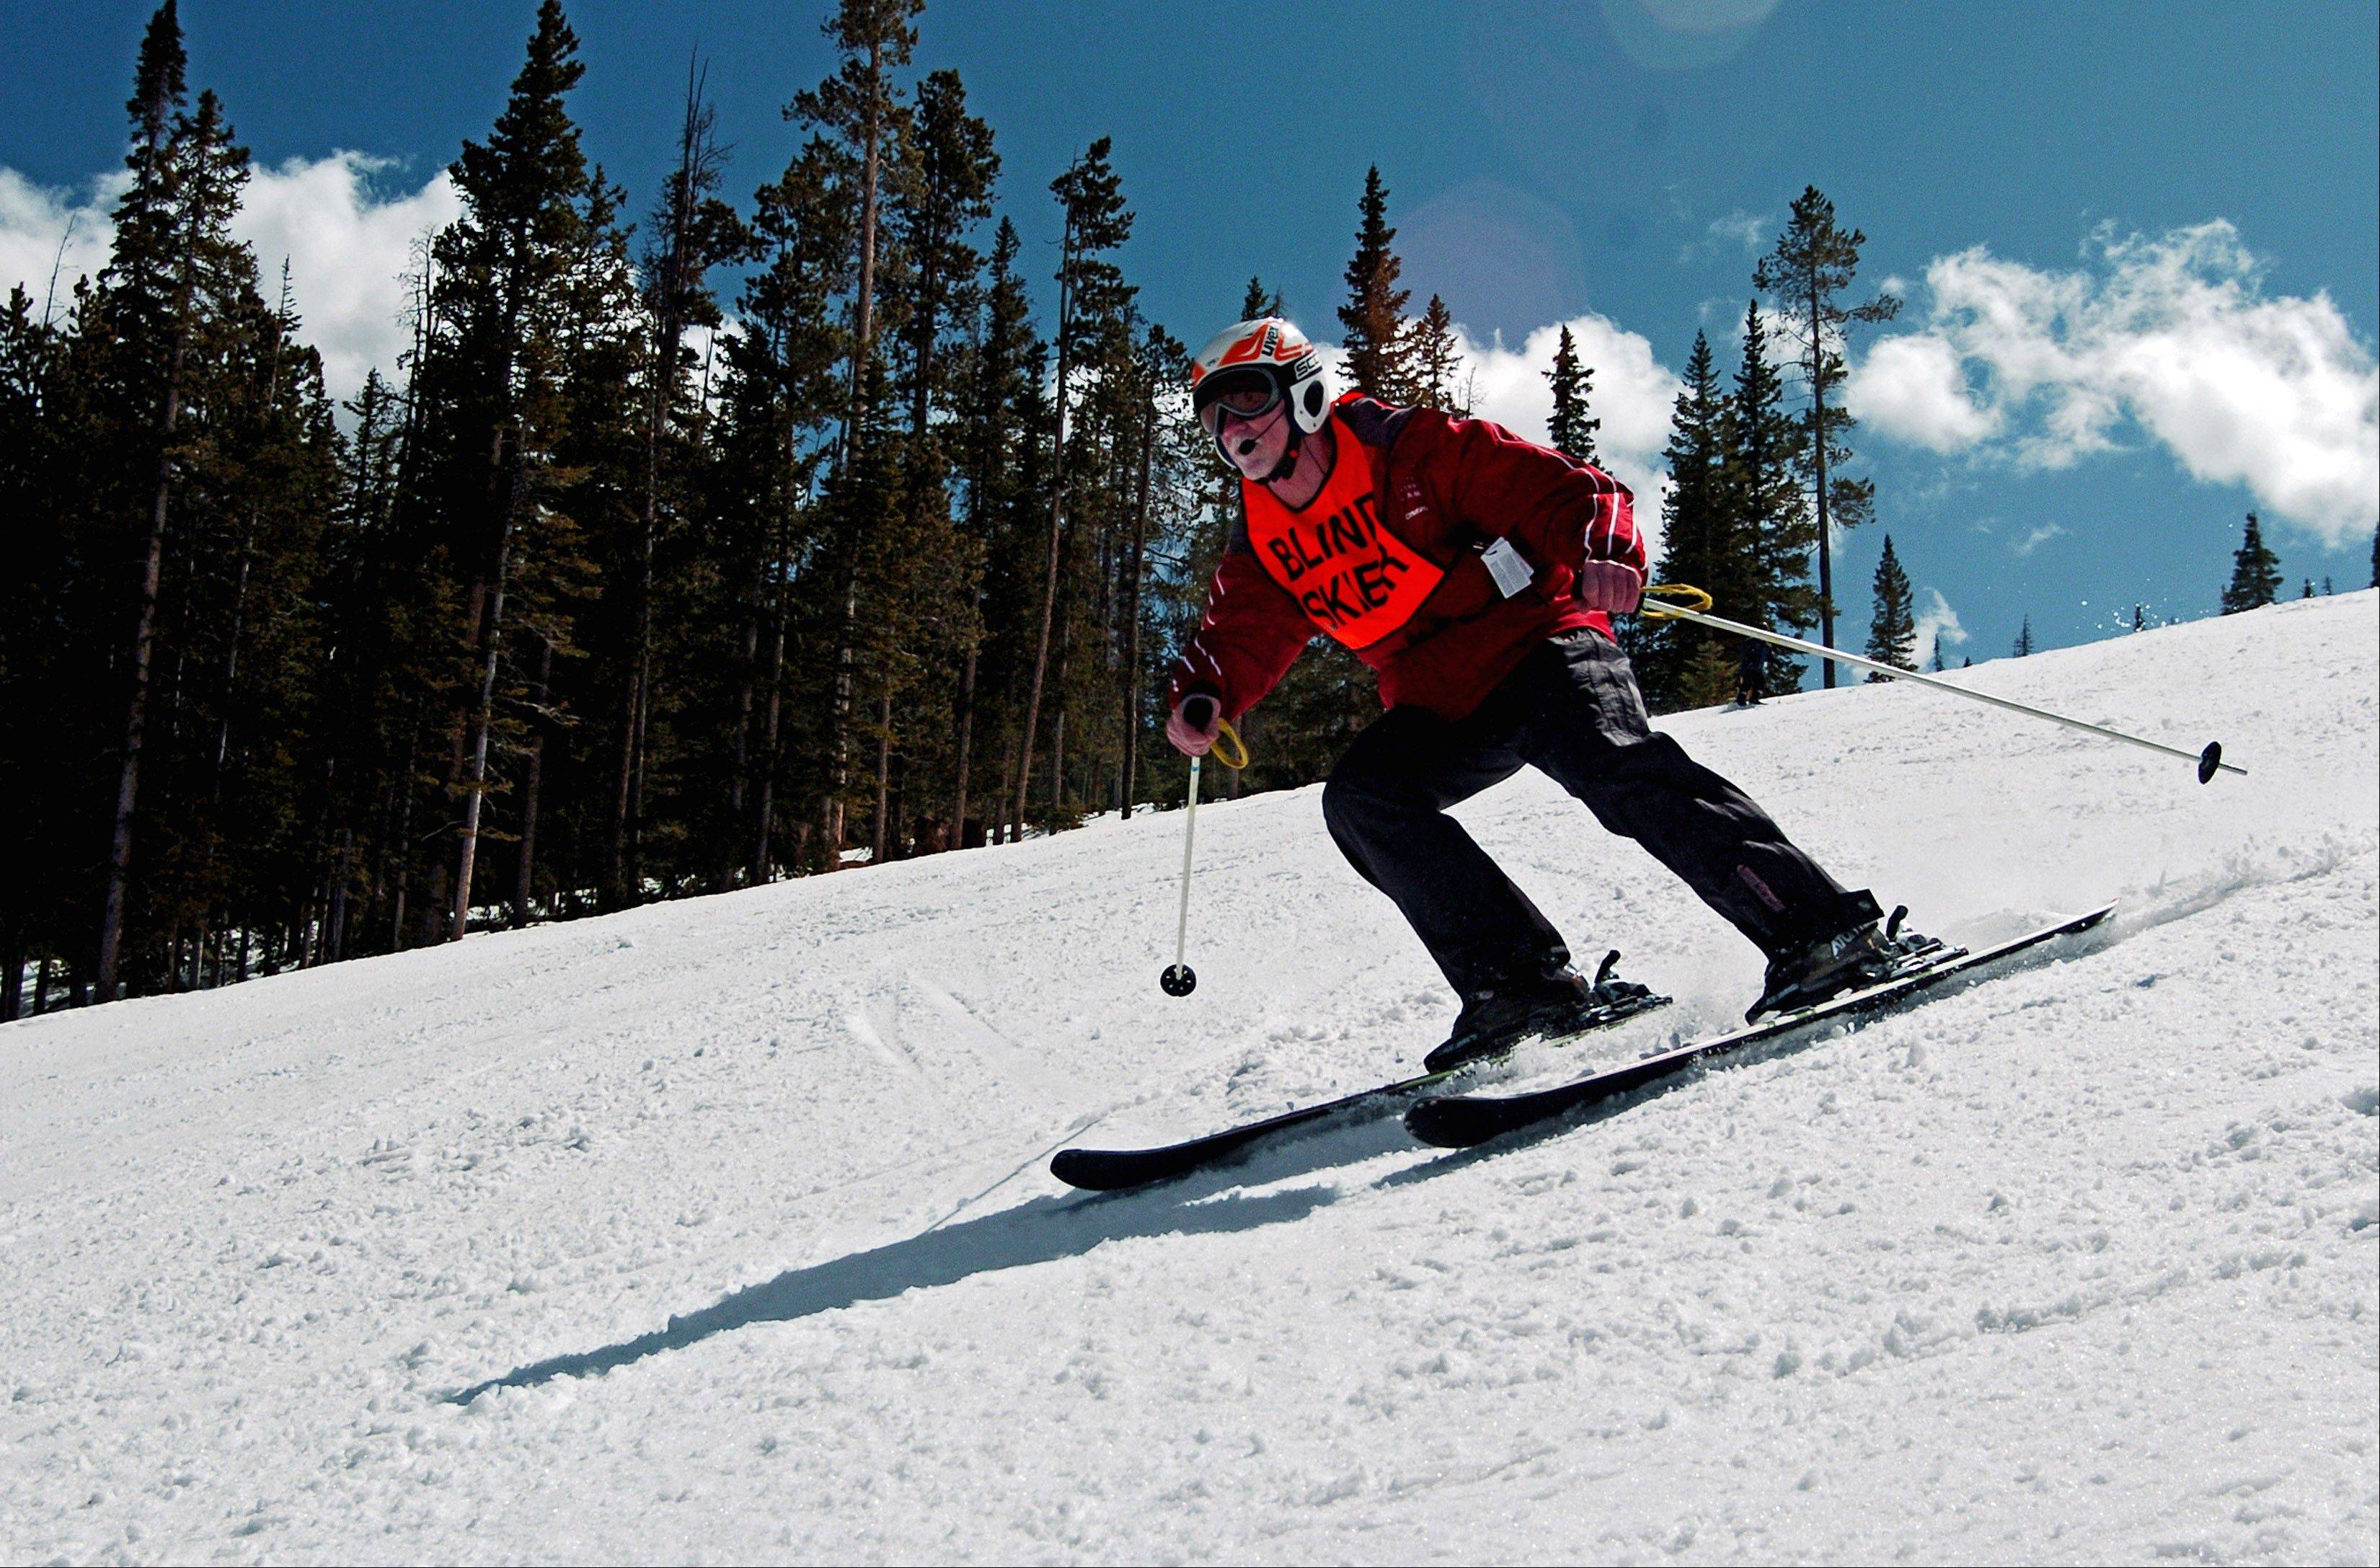 Blind skier Vic Gurganious cruises down a run at Colorado's Winter Park resort. Gurganious, a member of the alpine ski team at the National Ability Center in Park City, Utah, says he reaches speeds of up to 60 mph while communicating with his guide via a two-way radio built into his helmet.